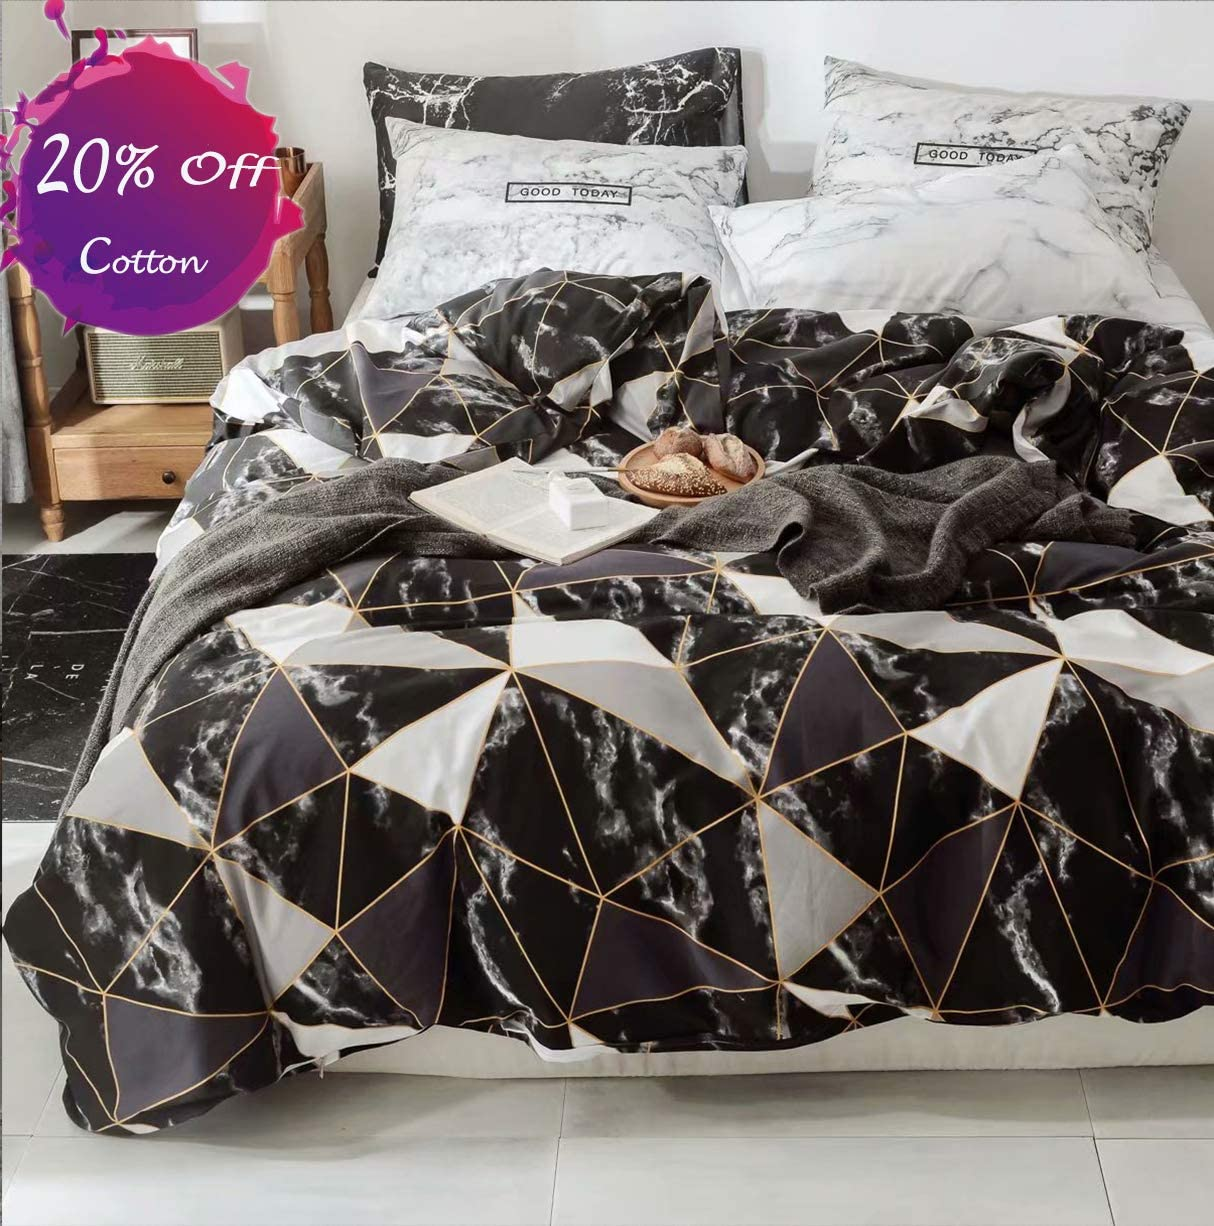 karever Black Marble Duvet Cover Set Queen Kids Gold Triangle Geometric Cotton Bedding Set Full Teen Boy Girl Gothic Chic Comforter Cover Set